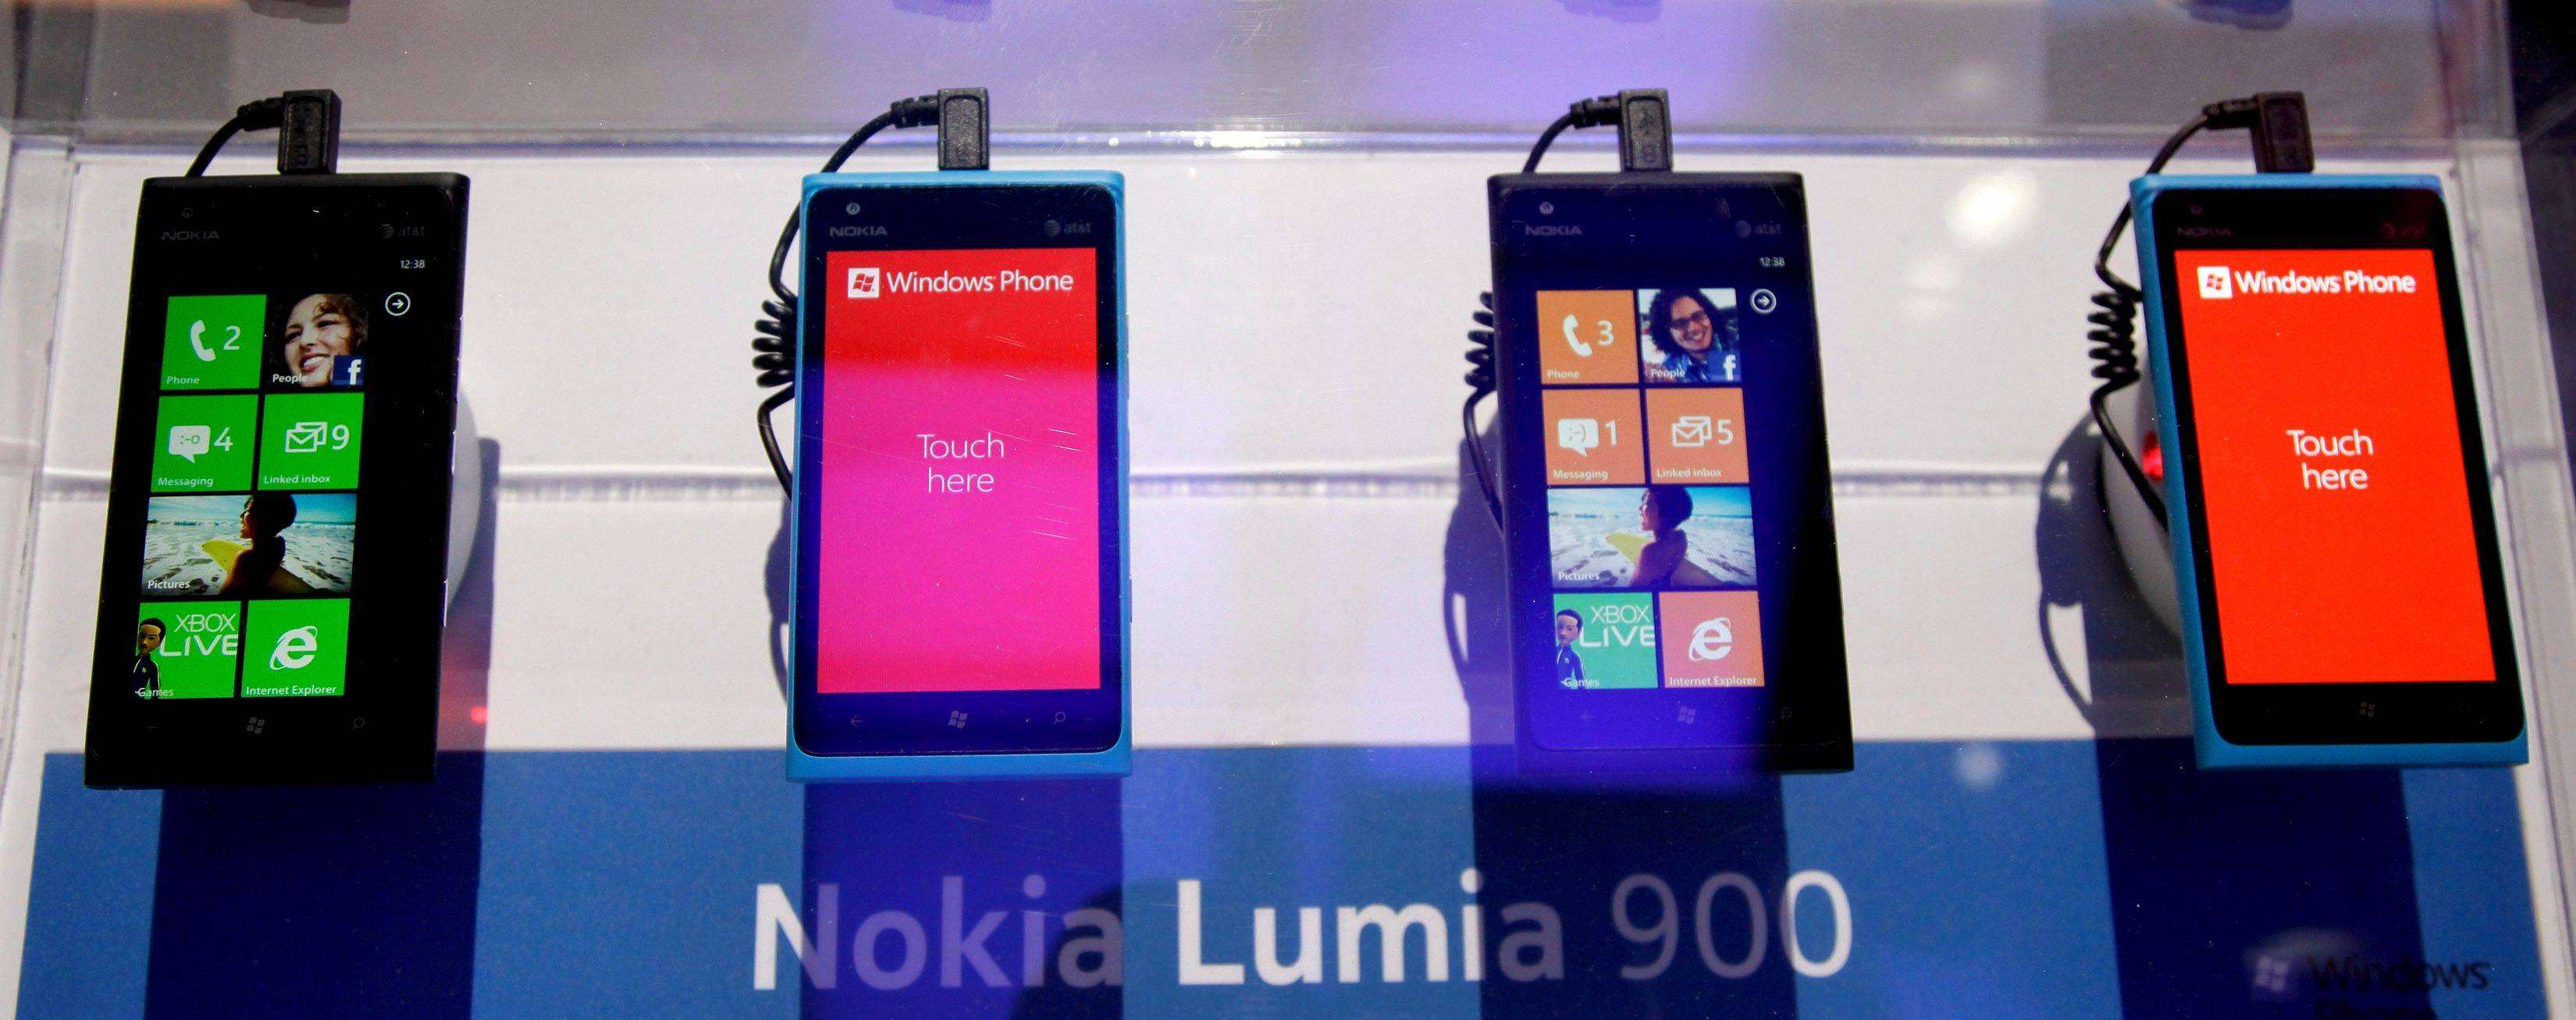 The Nokia Lumia 900 Windows based smartphones at the 2012 International CES trade show, in Las Vegas.